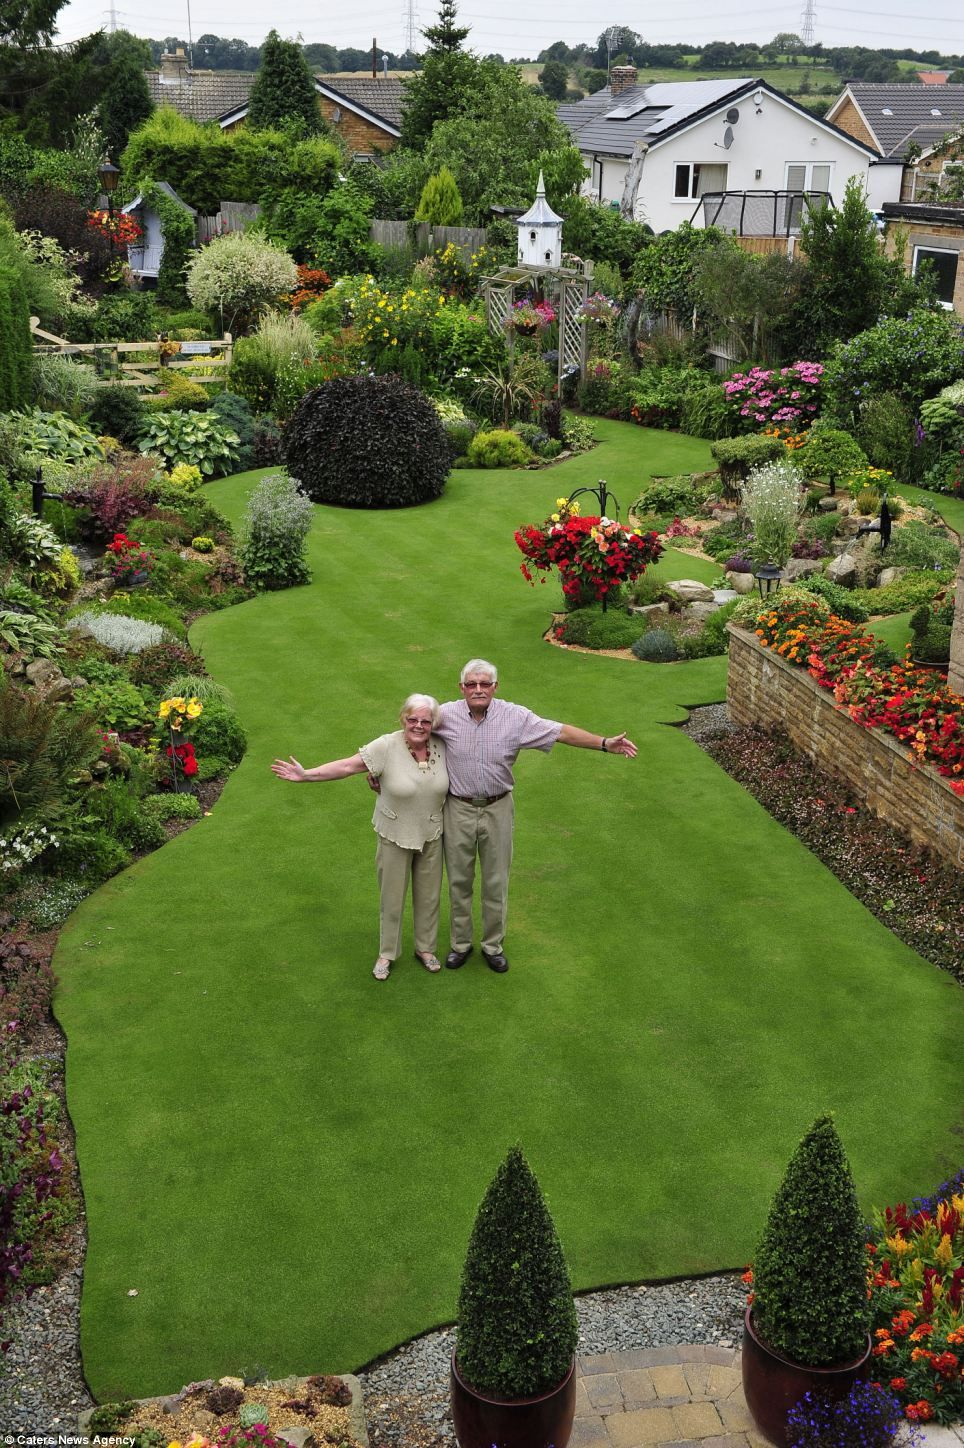 Jardin Vertical Casero Jardines Verticales Caseros Aprende A Dise Arlos Y Mantenerlos Precioso 1 A Gardening Life: They Spend 30hrs A Week Gardening!! - Anne And Stuart  Grindle Stand On The Hallowed Turf, Proudly Showing Off Their Immaculate  Garden At ...